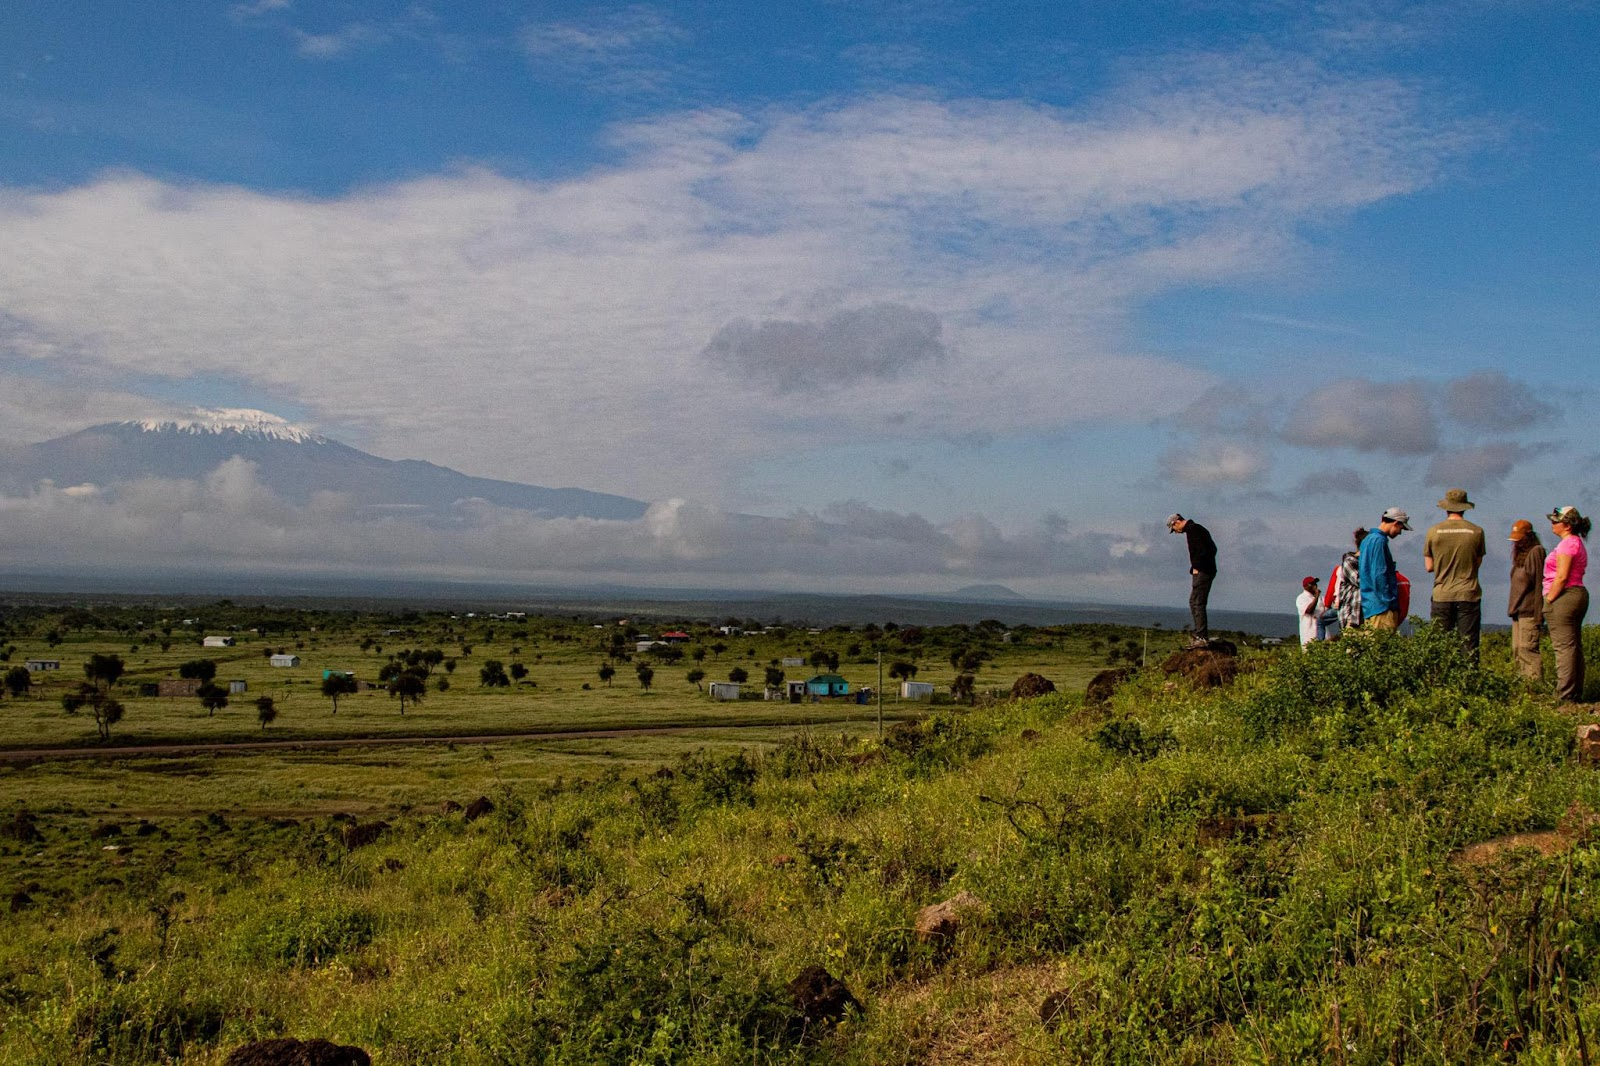 Morning lecture with a view of Kili - photo by Ryan Frederick Wiramidjaja